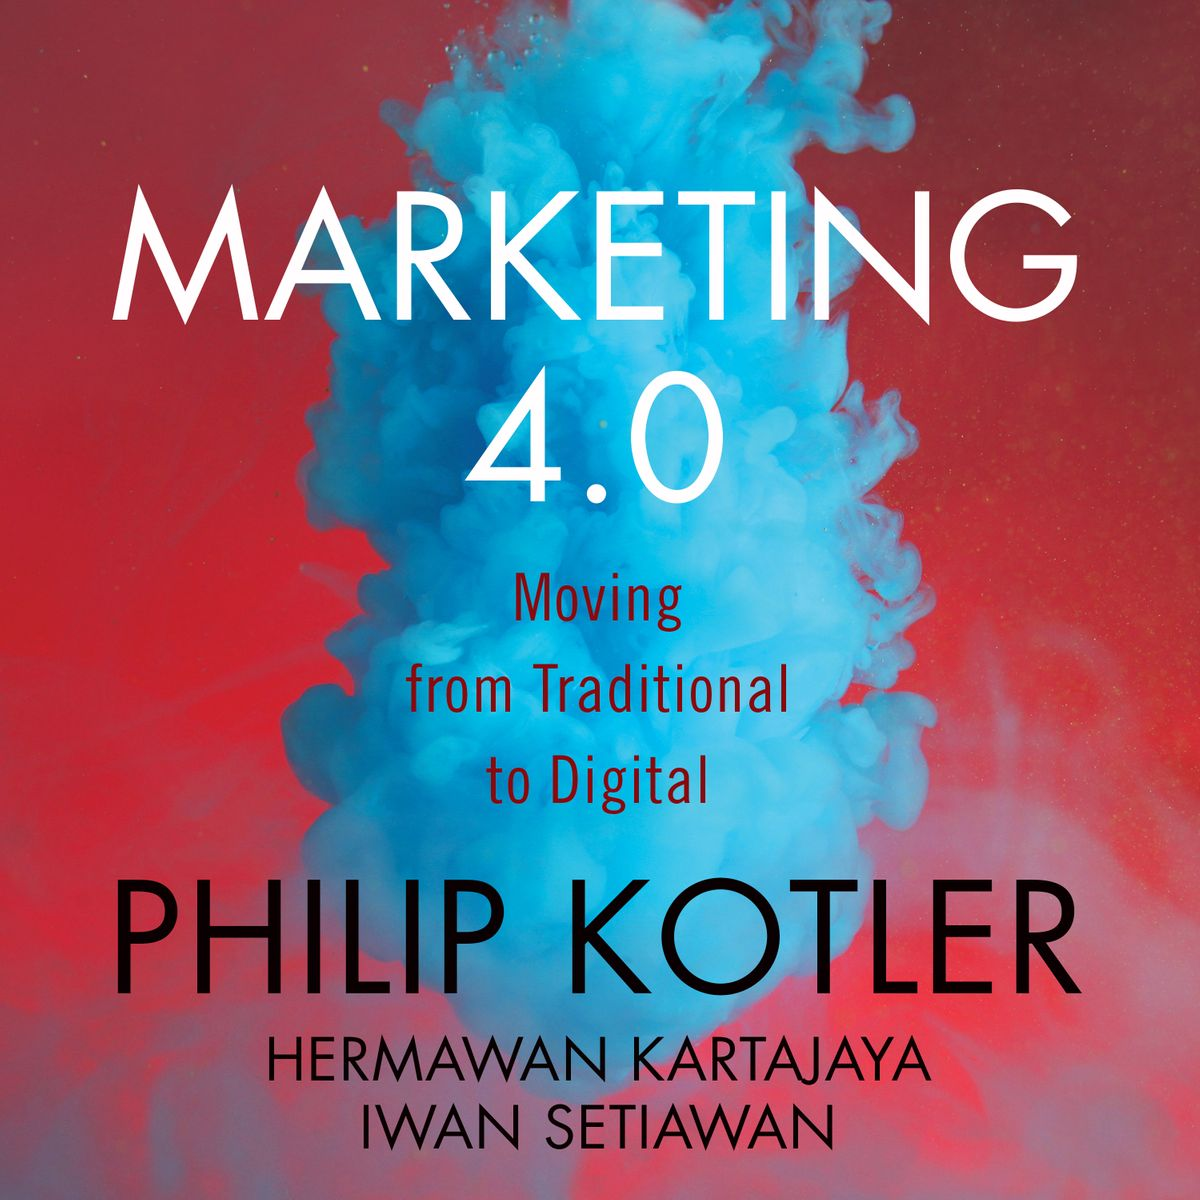 buku marketing 4.0